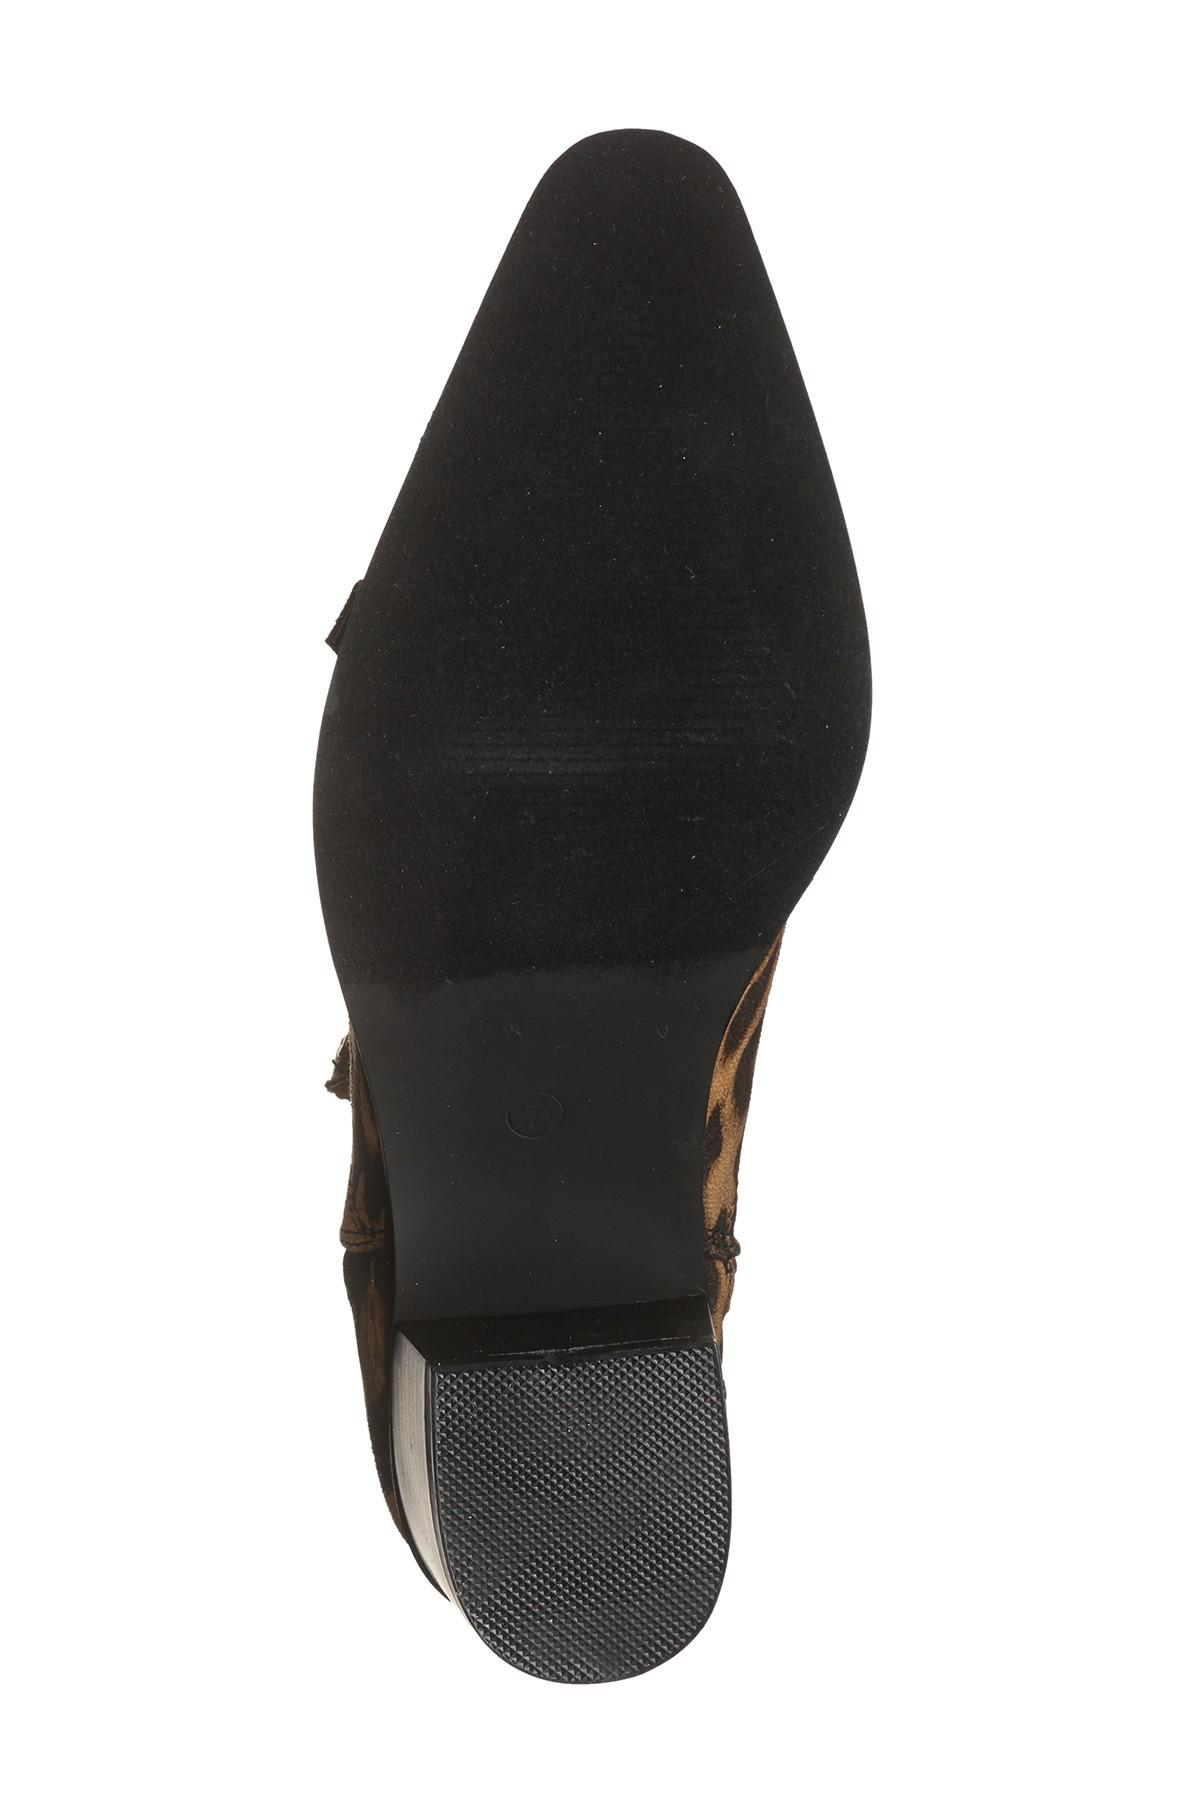 62d9c8e54f8 Cape Robbin - Brown Moto Pointy Toe Ankle Boot - Lyst. View fullscreen